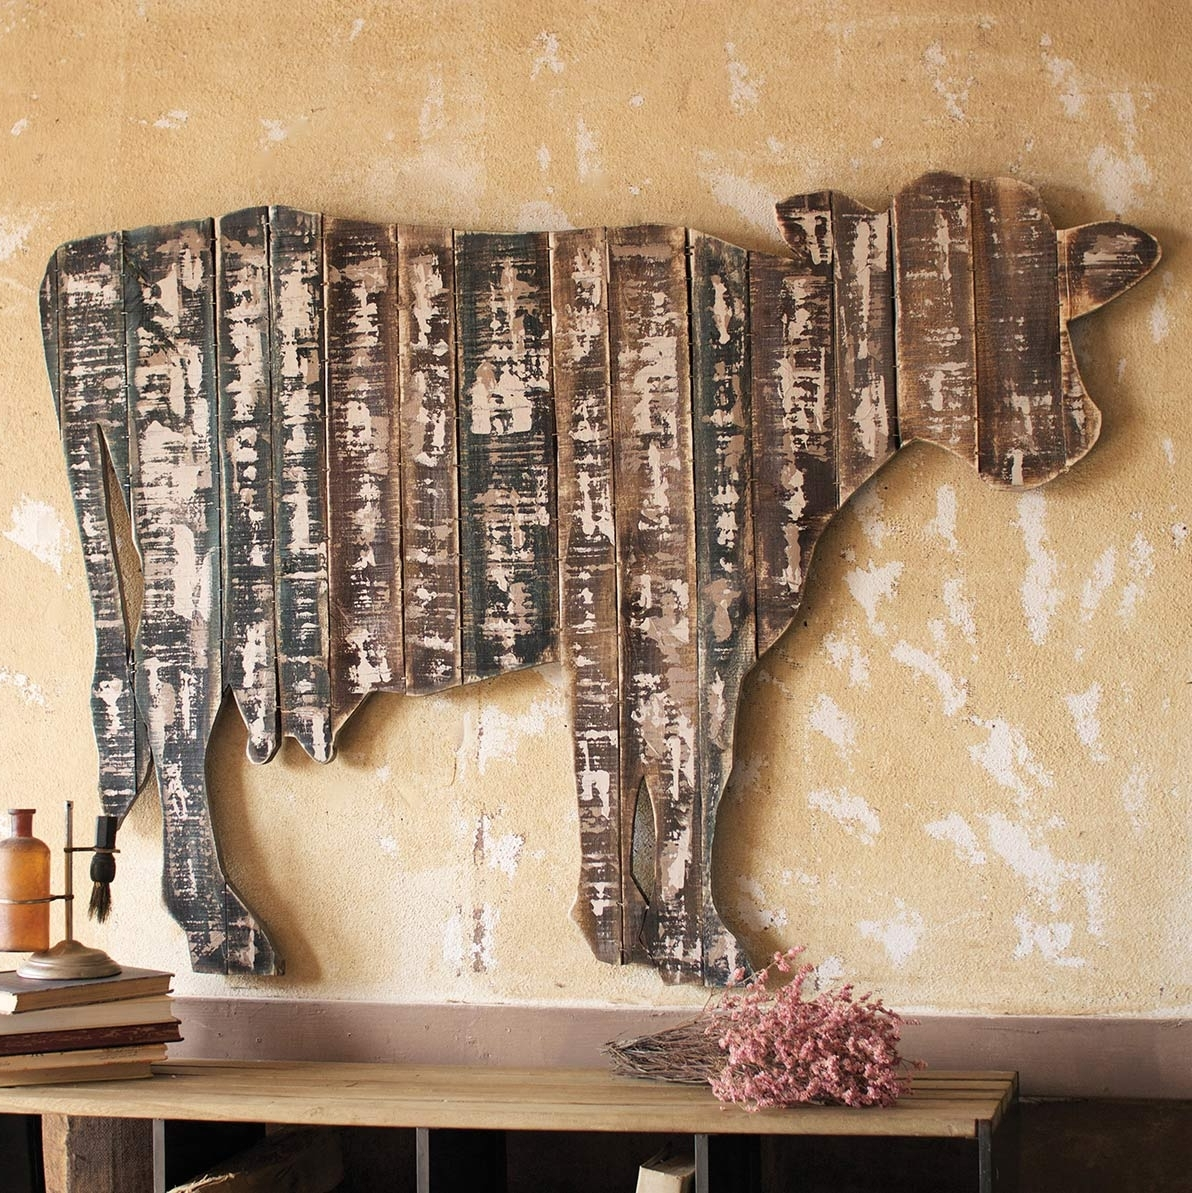 2017 Western Metal Wall Art Western House Decor Rustic Western Home Decor With Regard To Rustic Metal Wall Art (View 2 of 20)